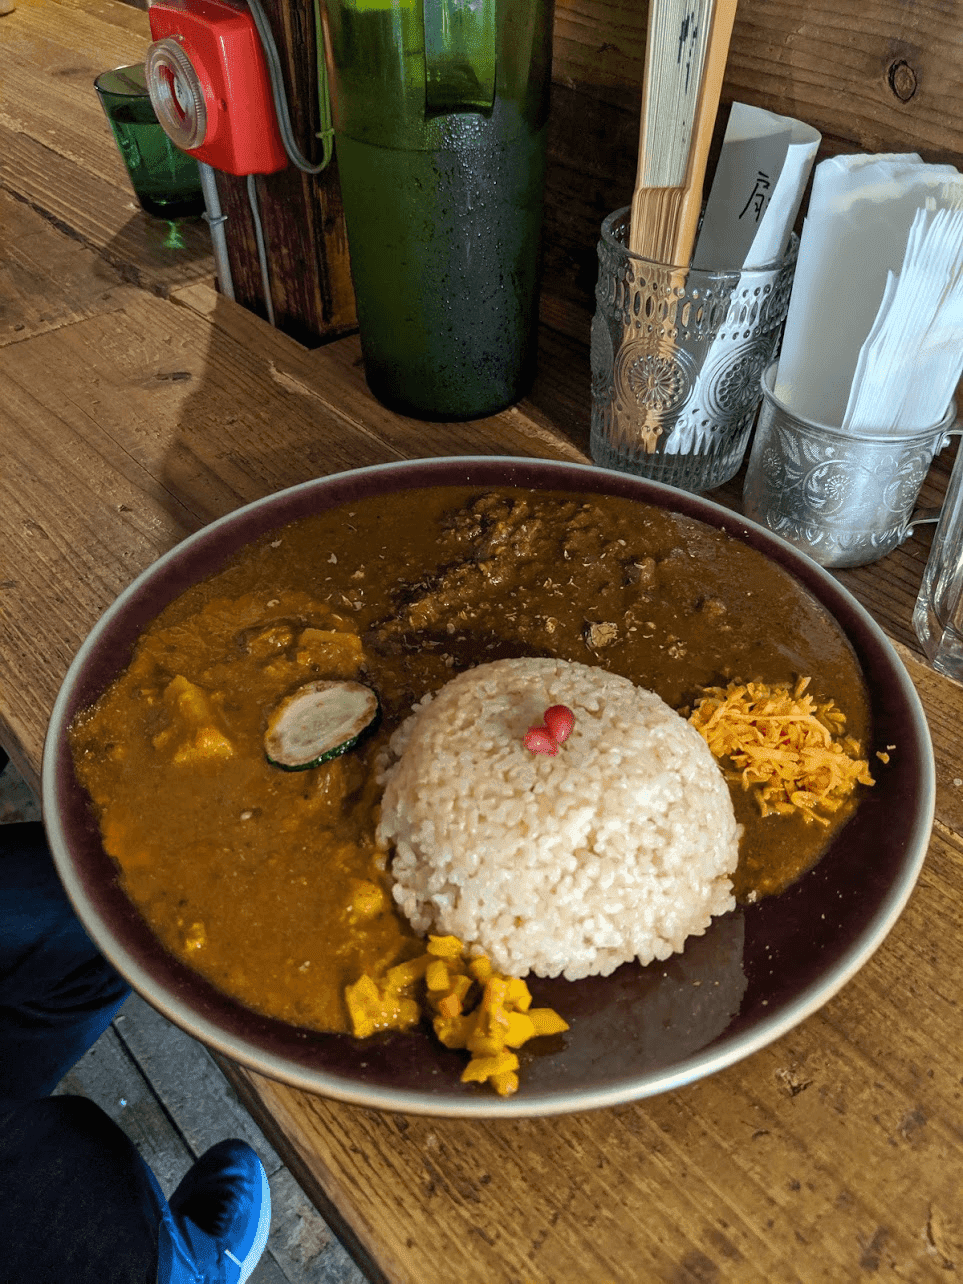 Plate of spice curry and rice